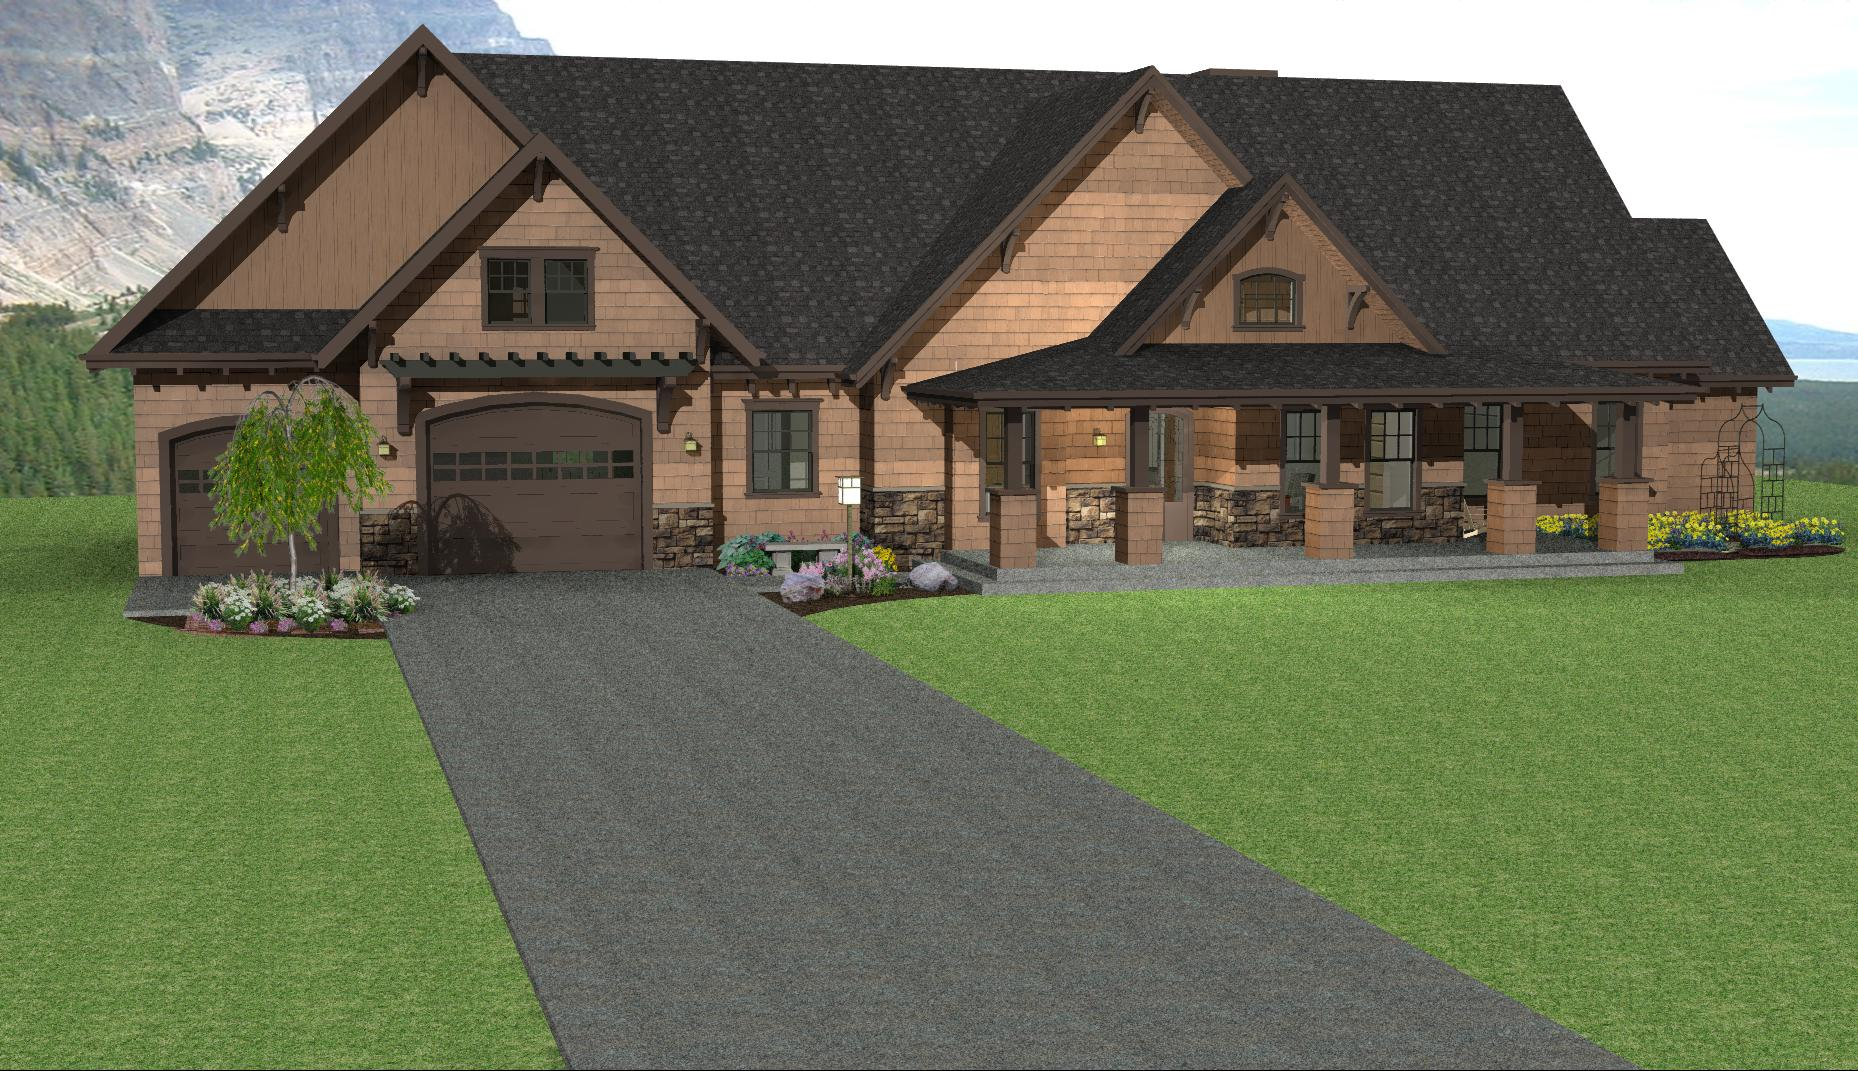 Ranch style home designs find house plans for Ranch designs